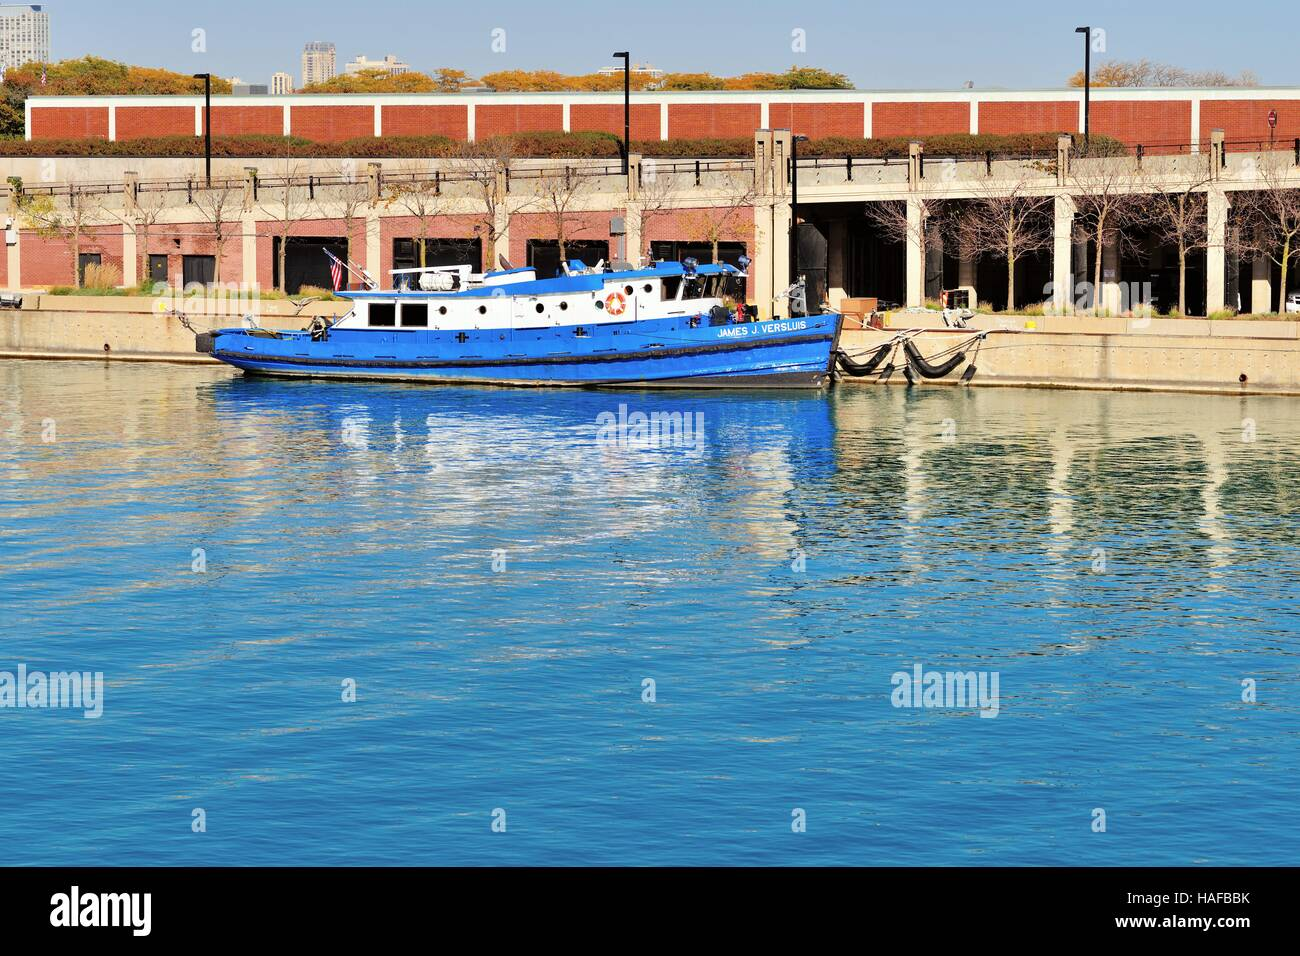 A lone ship is tied up in a Lake Michigan inlet channel across from Chicago's Navy Pier. Chicago, Illinois, - Stock Image